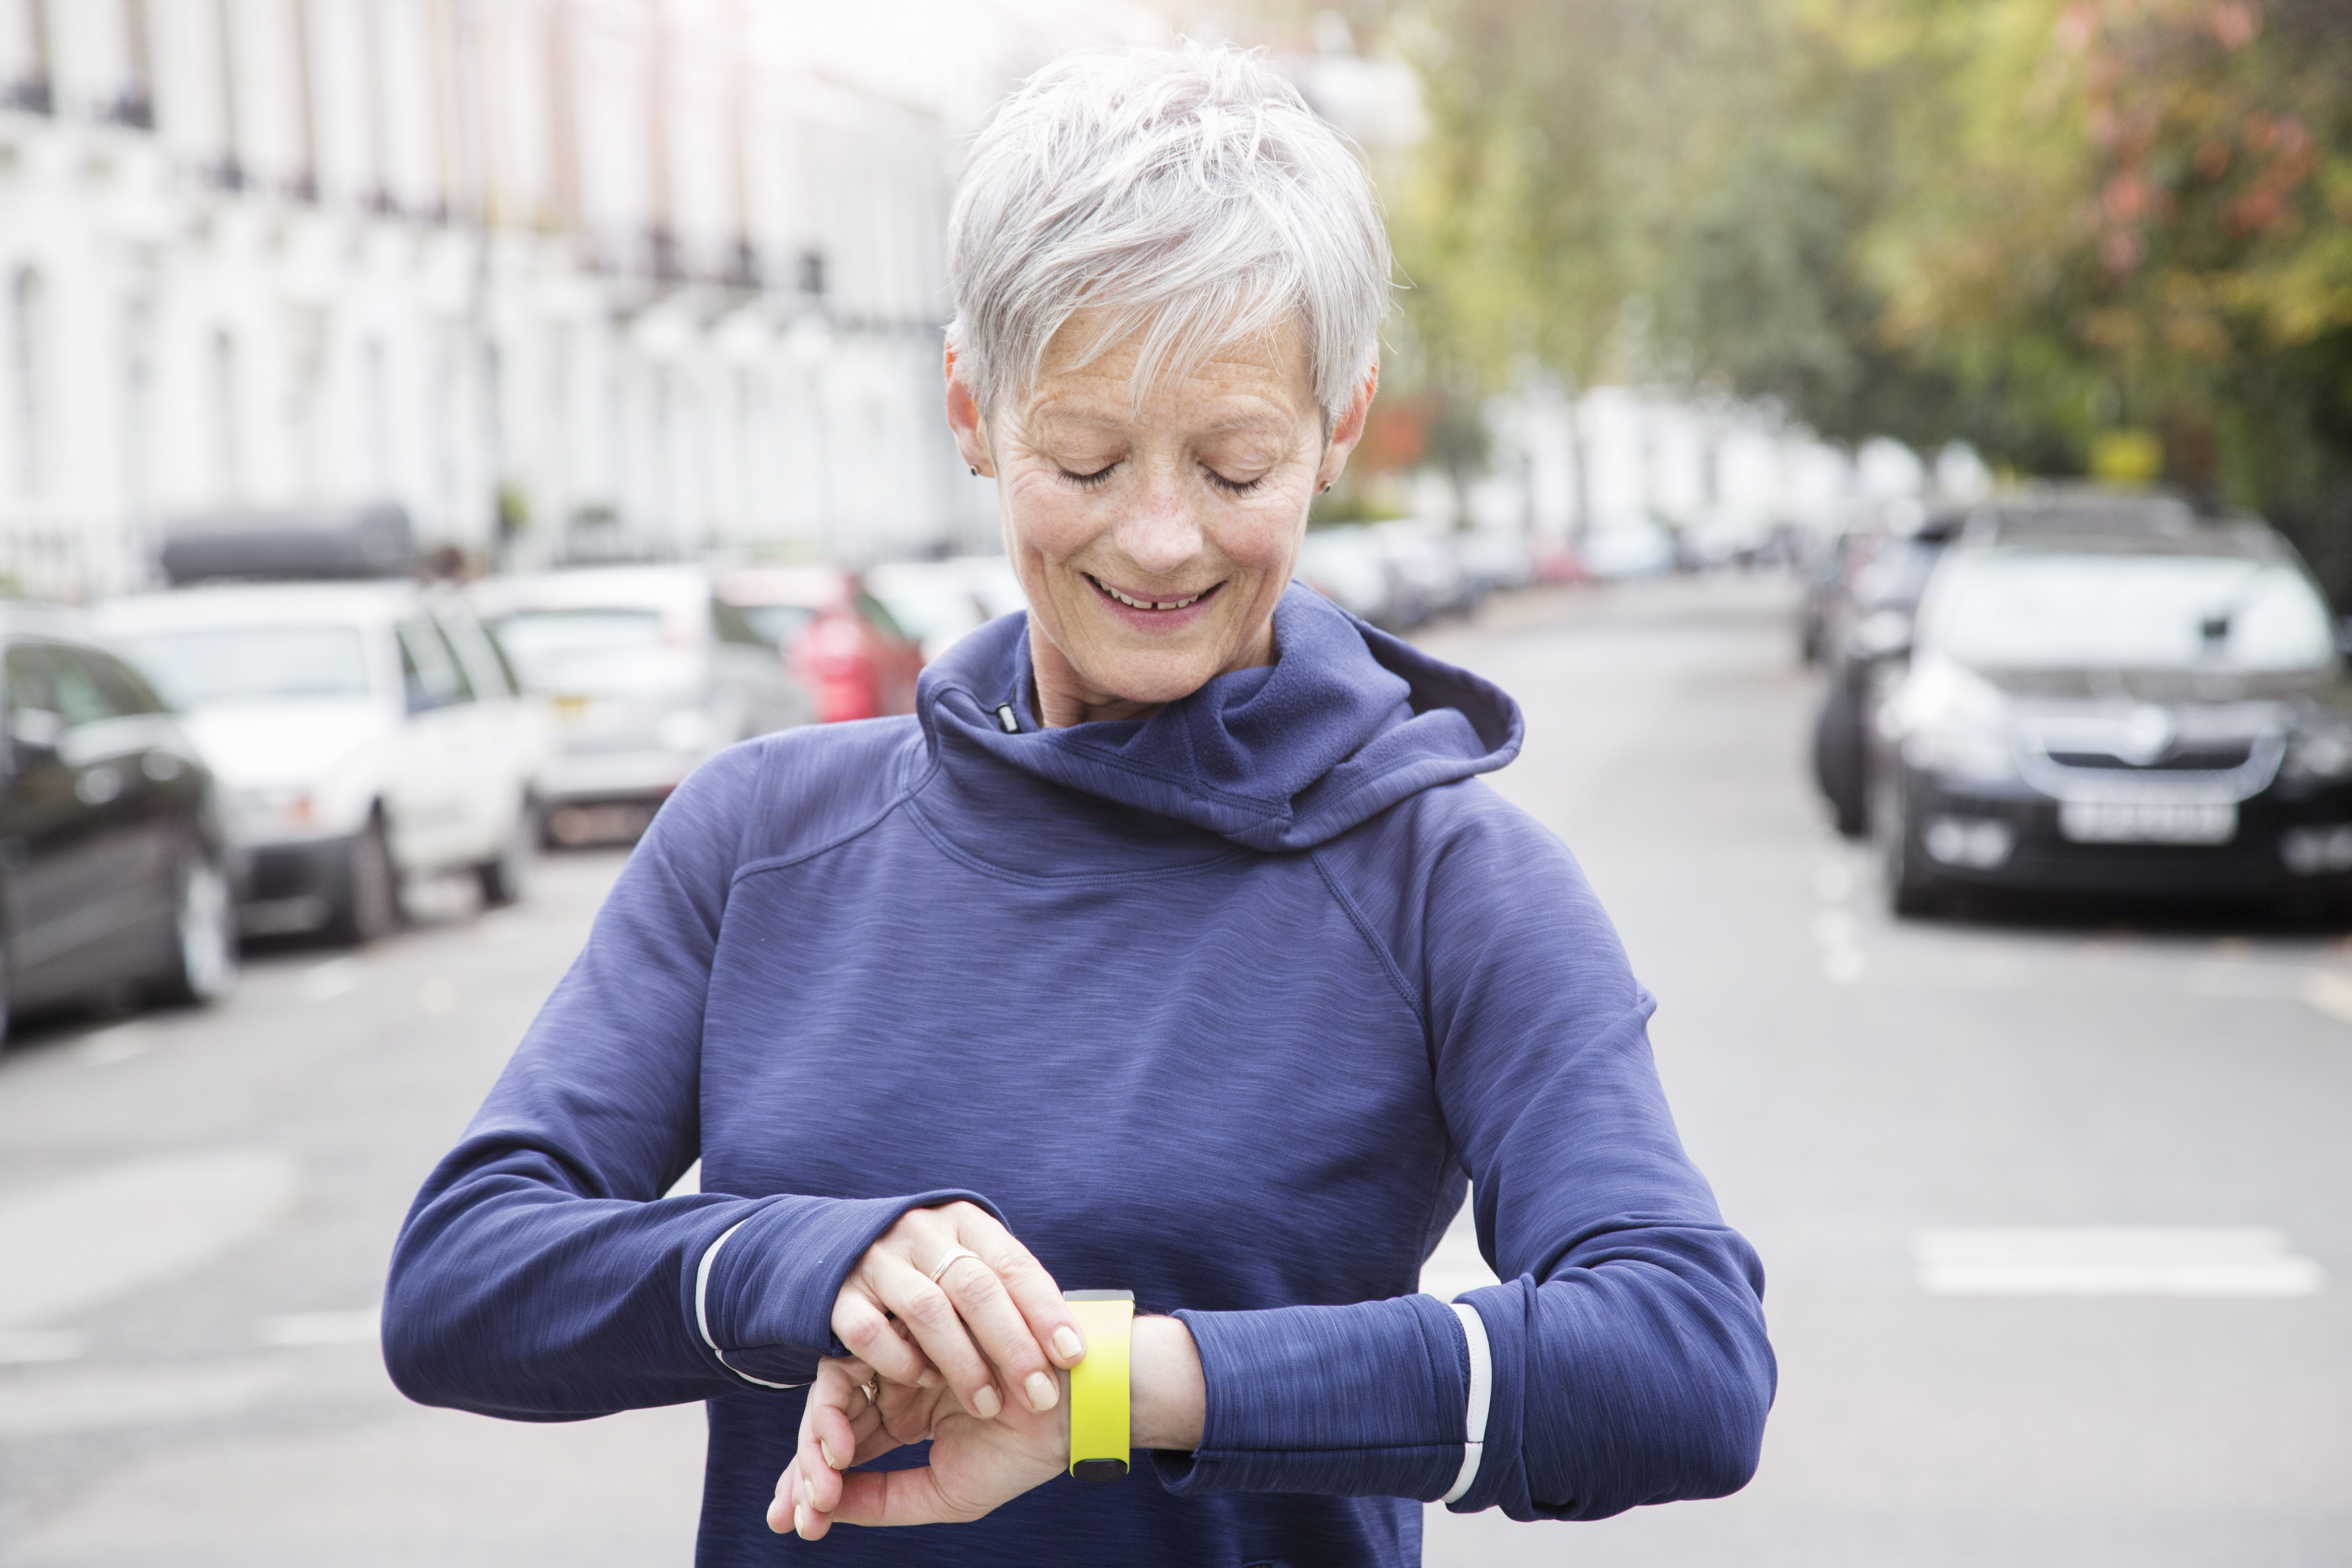 We May Soon Be Able to Detect Alzheimer's Early Using a Wearable Device - Woman's World